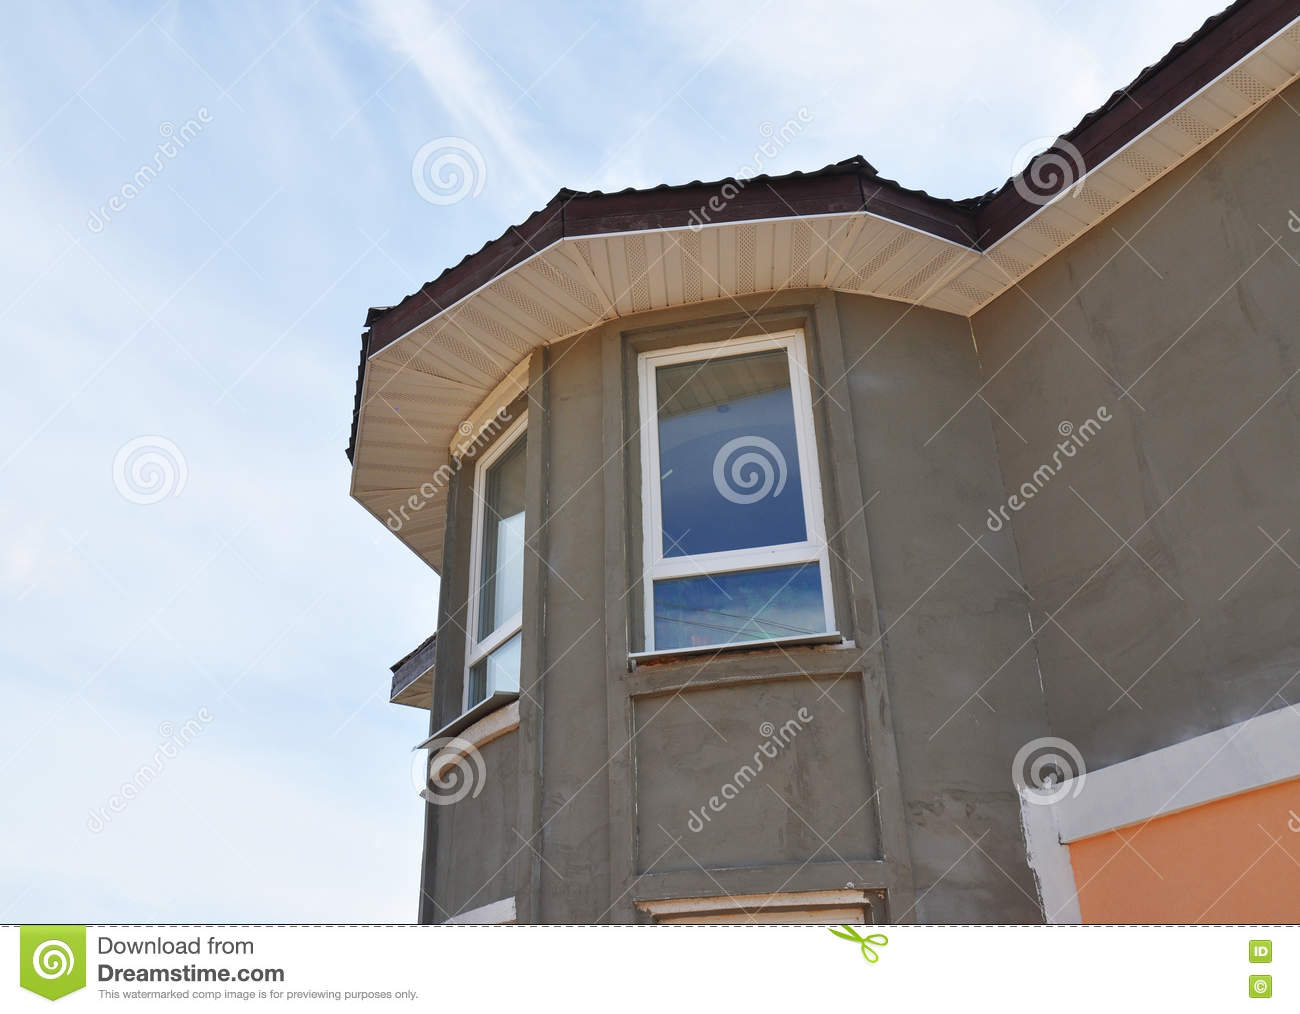 Painting And Plastering Exterior House Tower Wall Facade Thermal Insulation And Painting Works